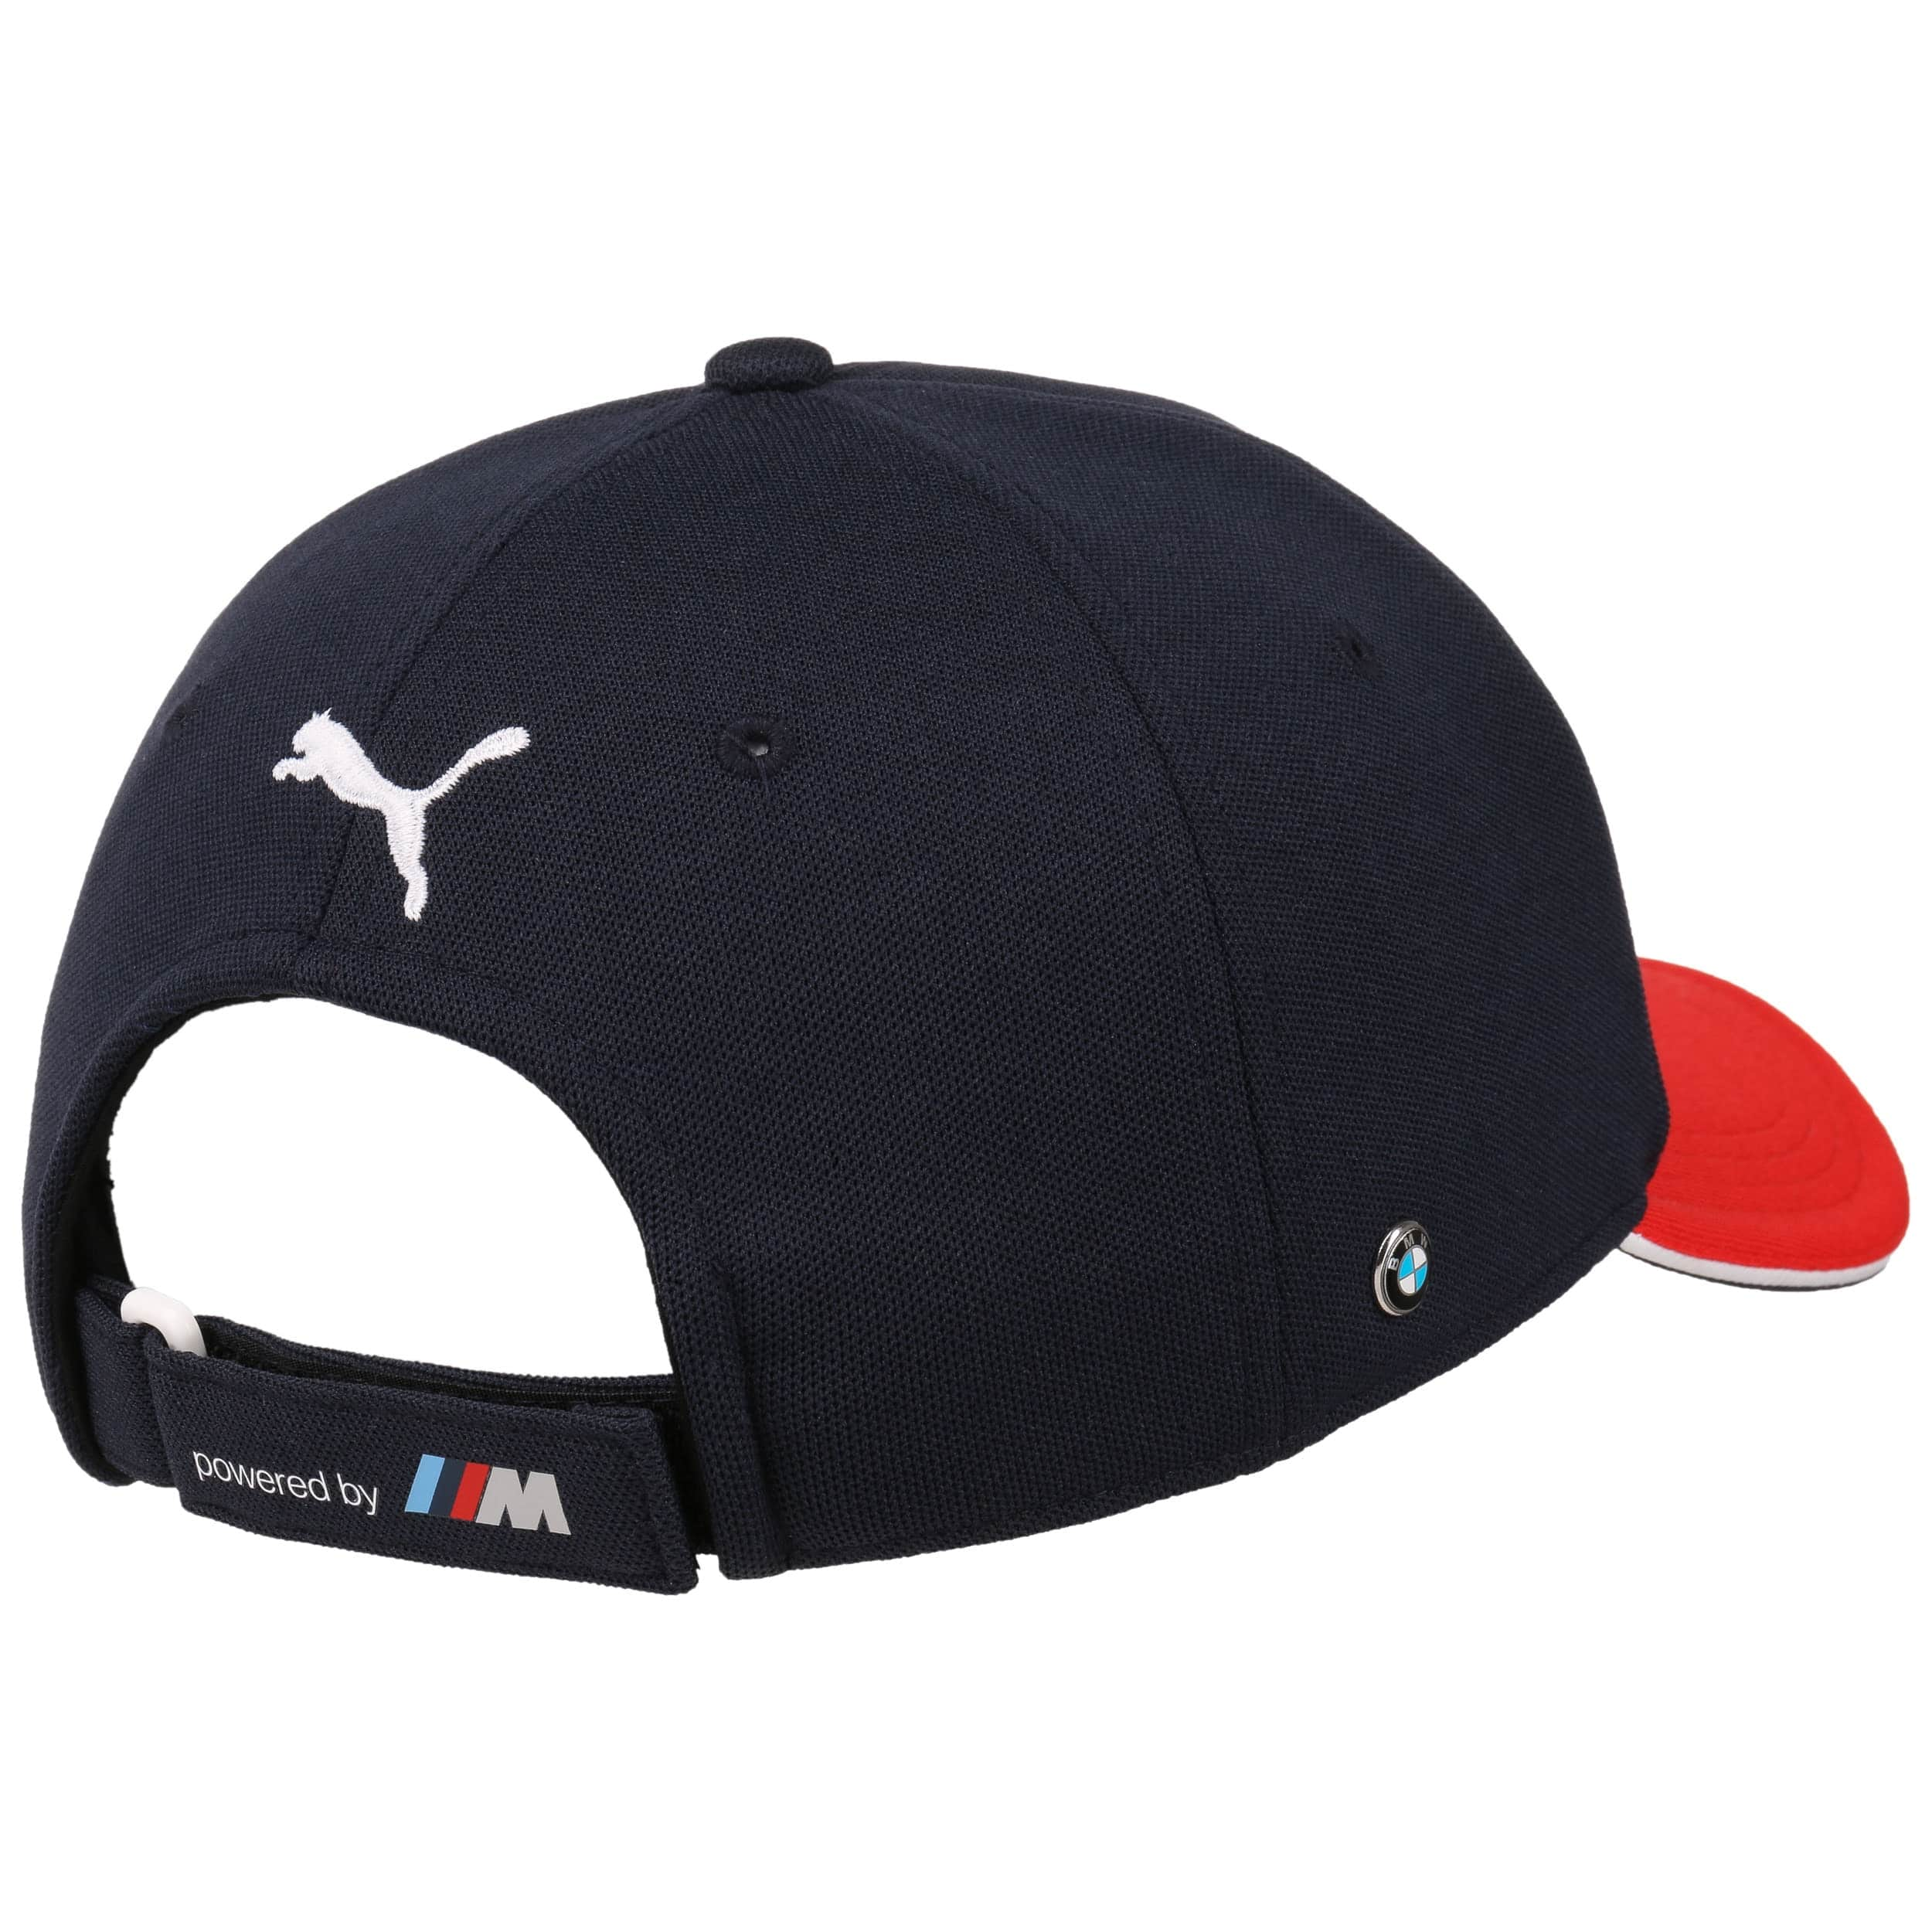 motorrad from bmw father fathers com gift cap mcnews day au ideas s